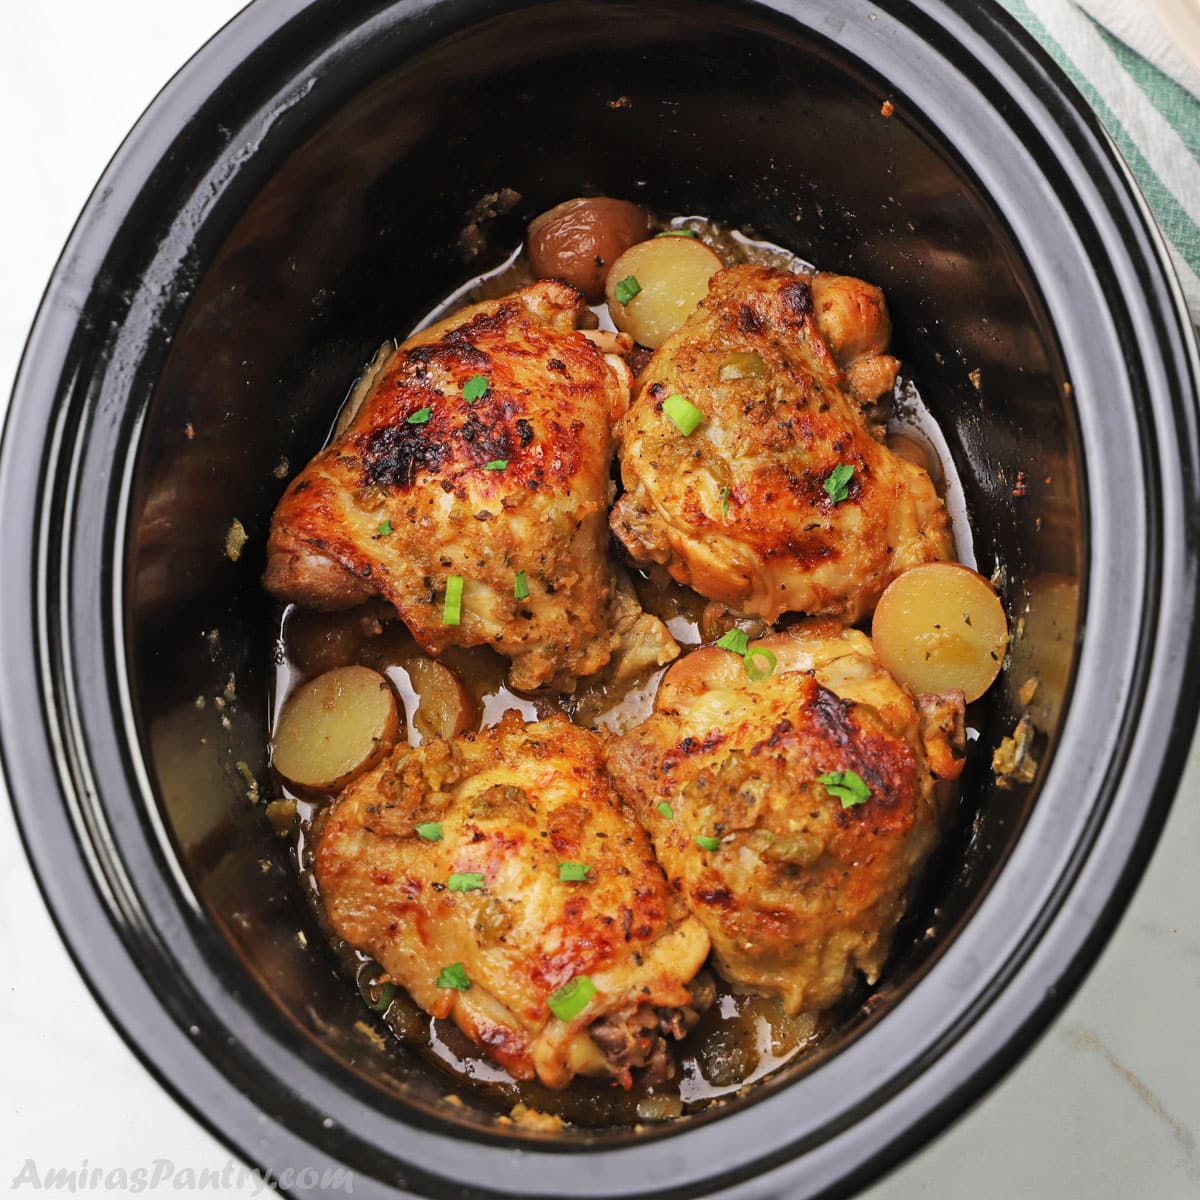 a slow cooker with chicken thighs and potatoes.